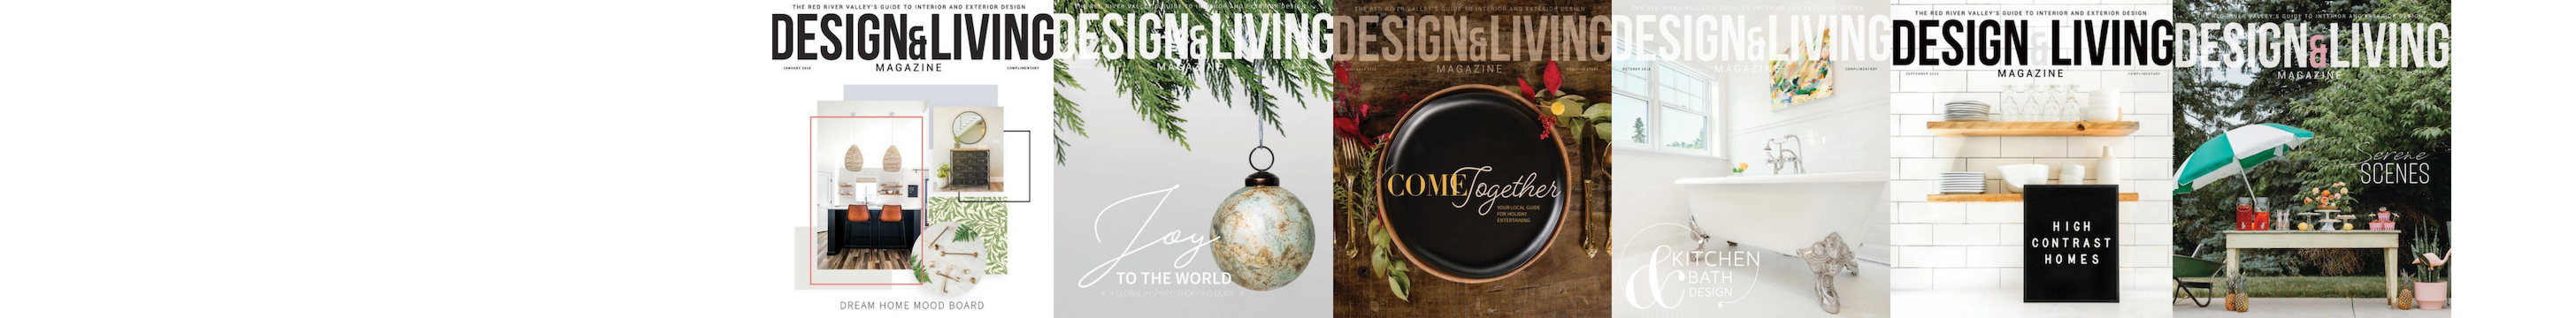 Design and Living Cover Photo